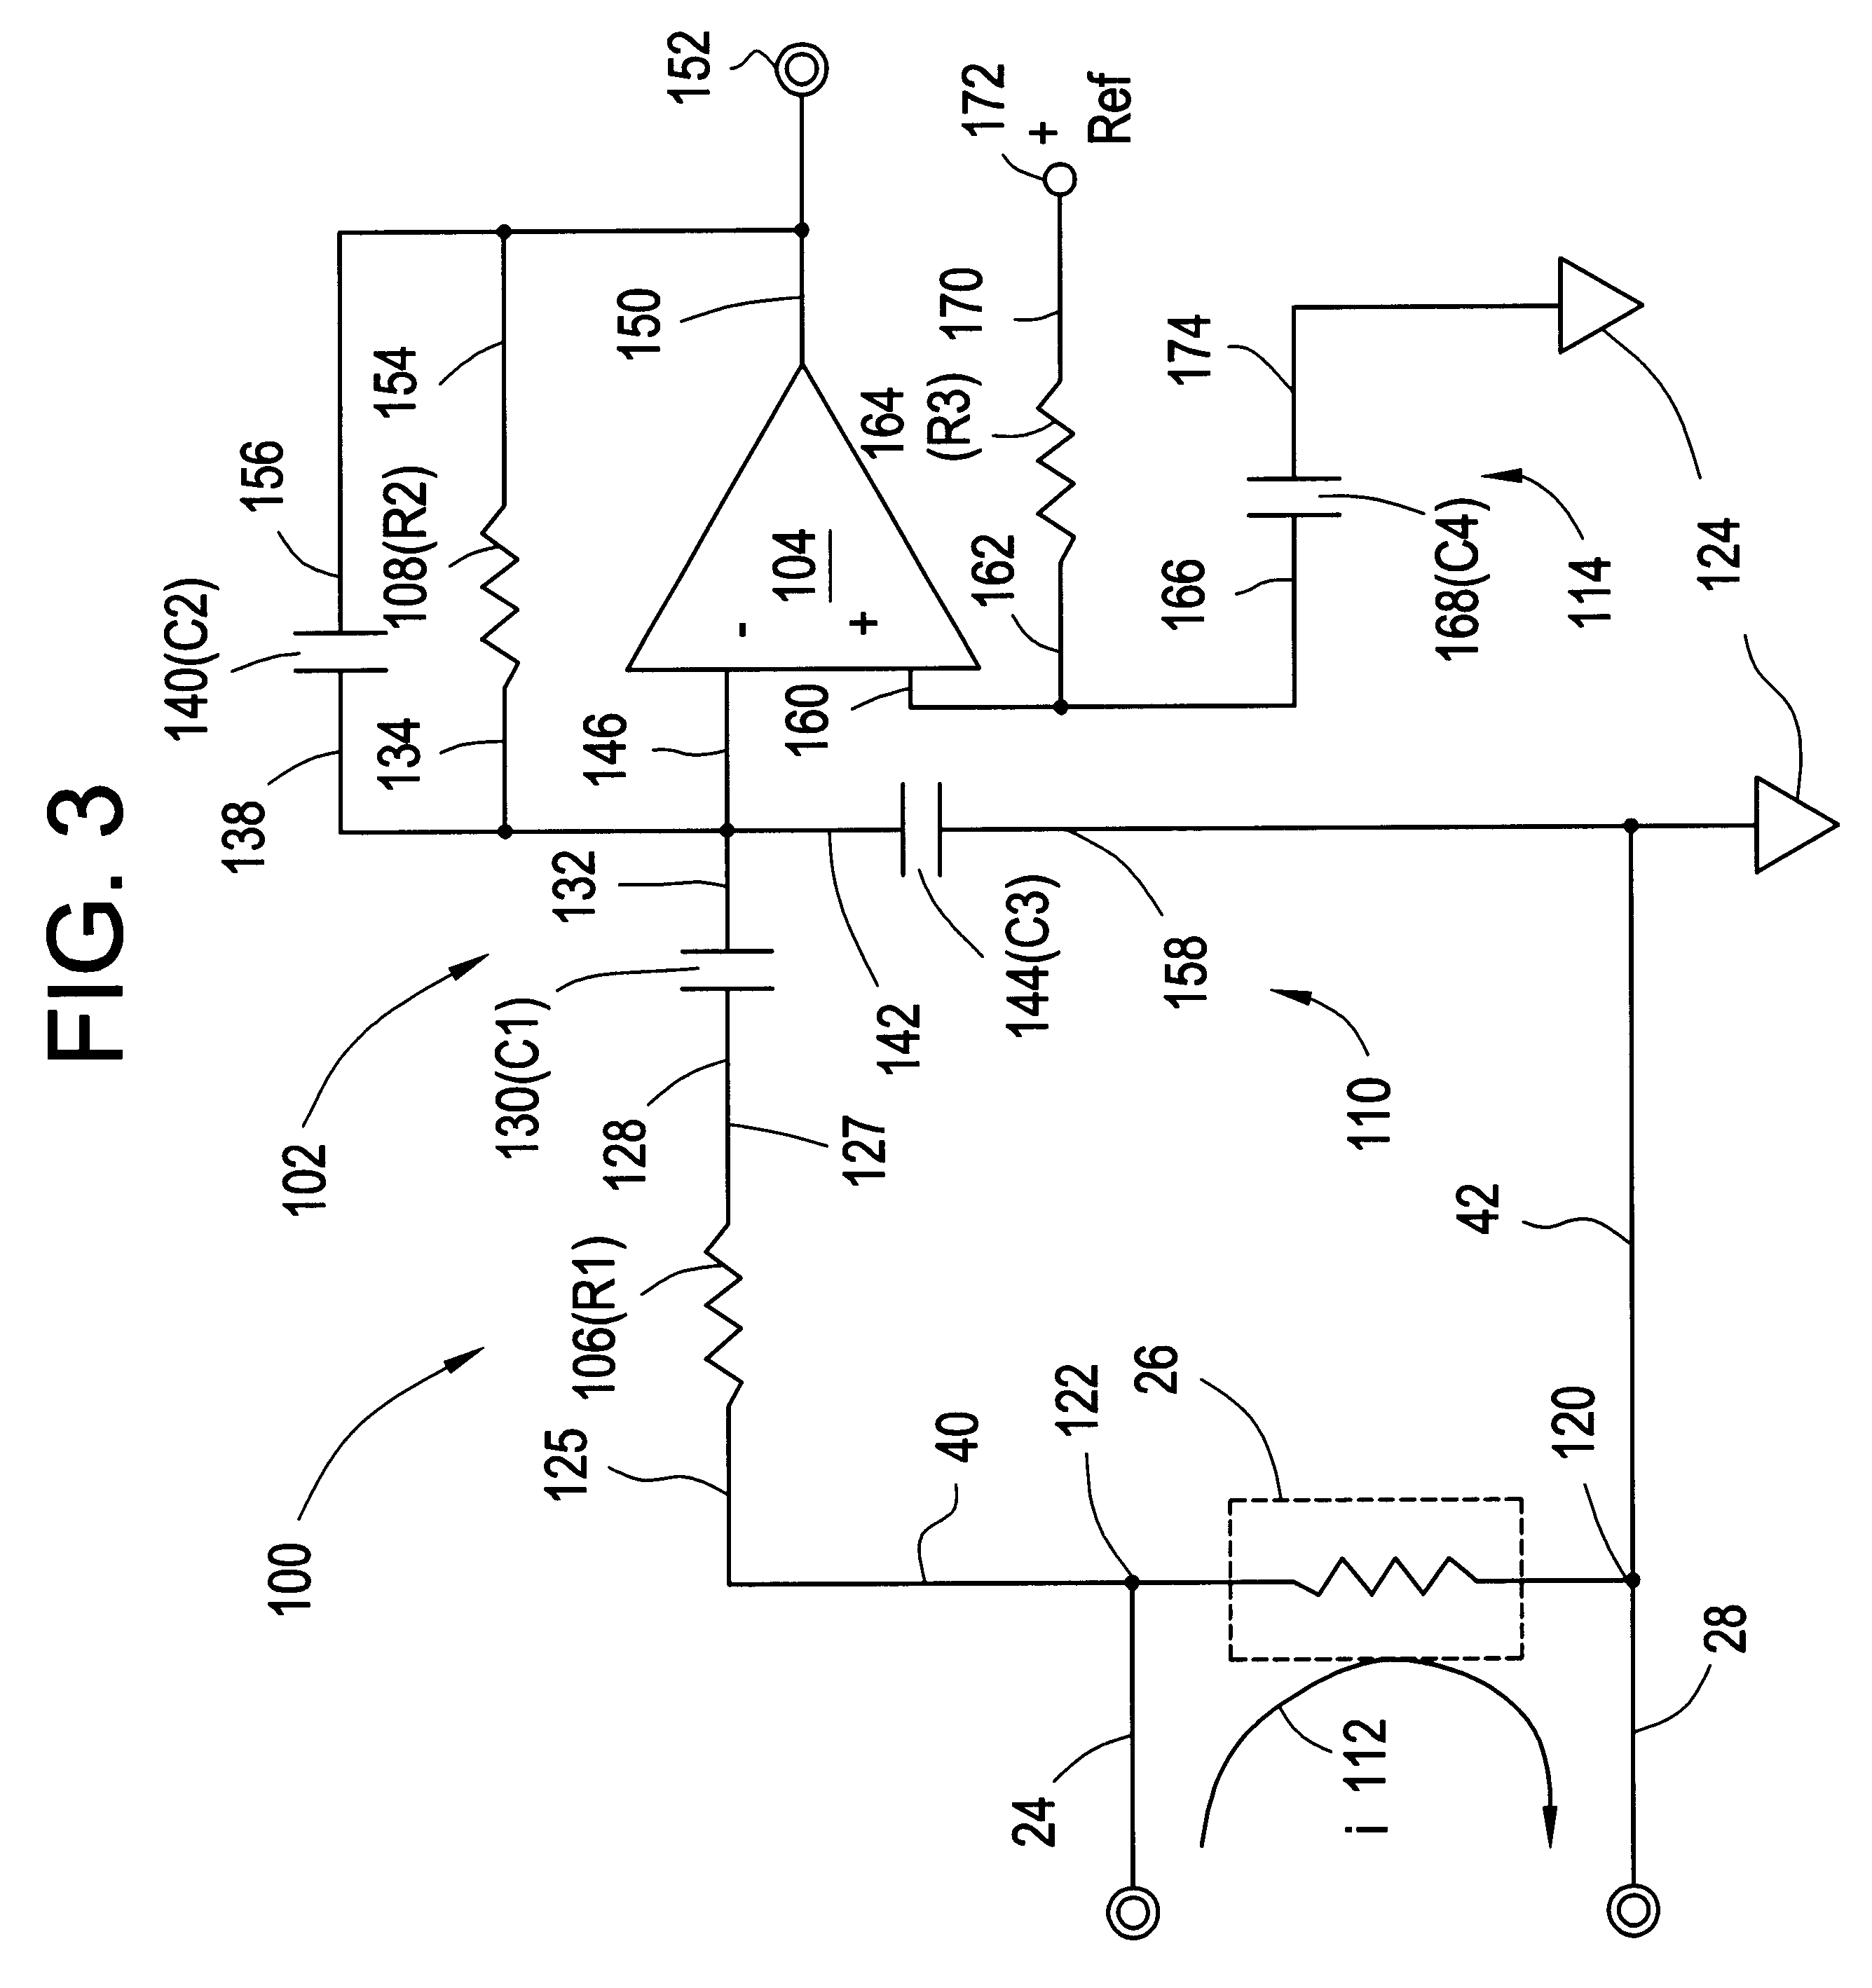 Afci Wiring Methods Diagrams Outlet Diagram Patent Us6678137 Temperature Compensation Circuit For An Square D Receptacle